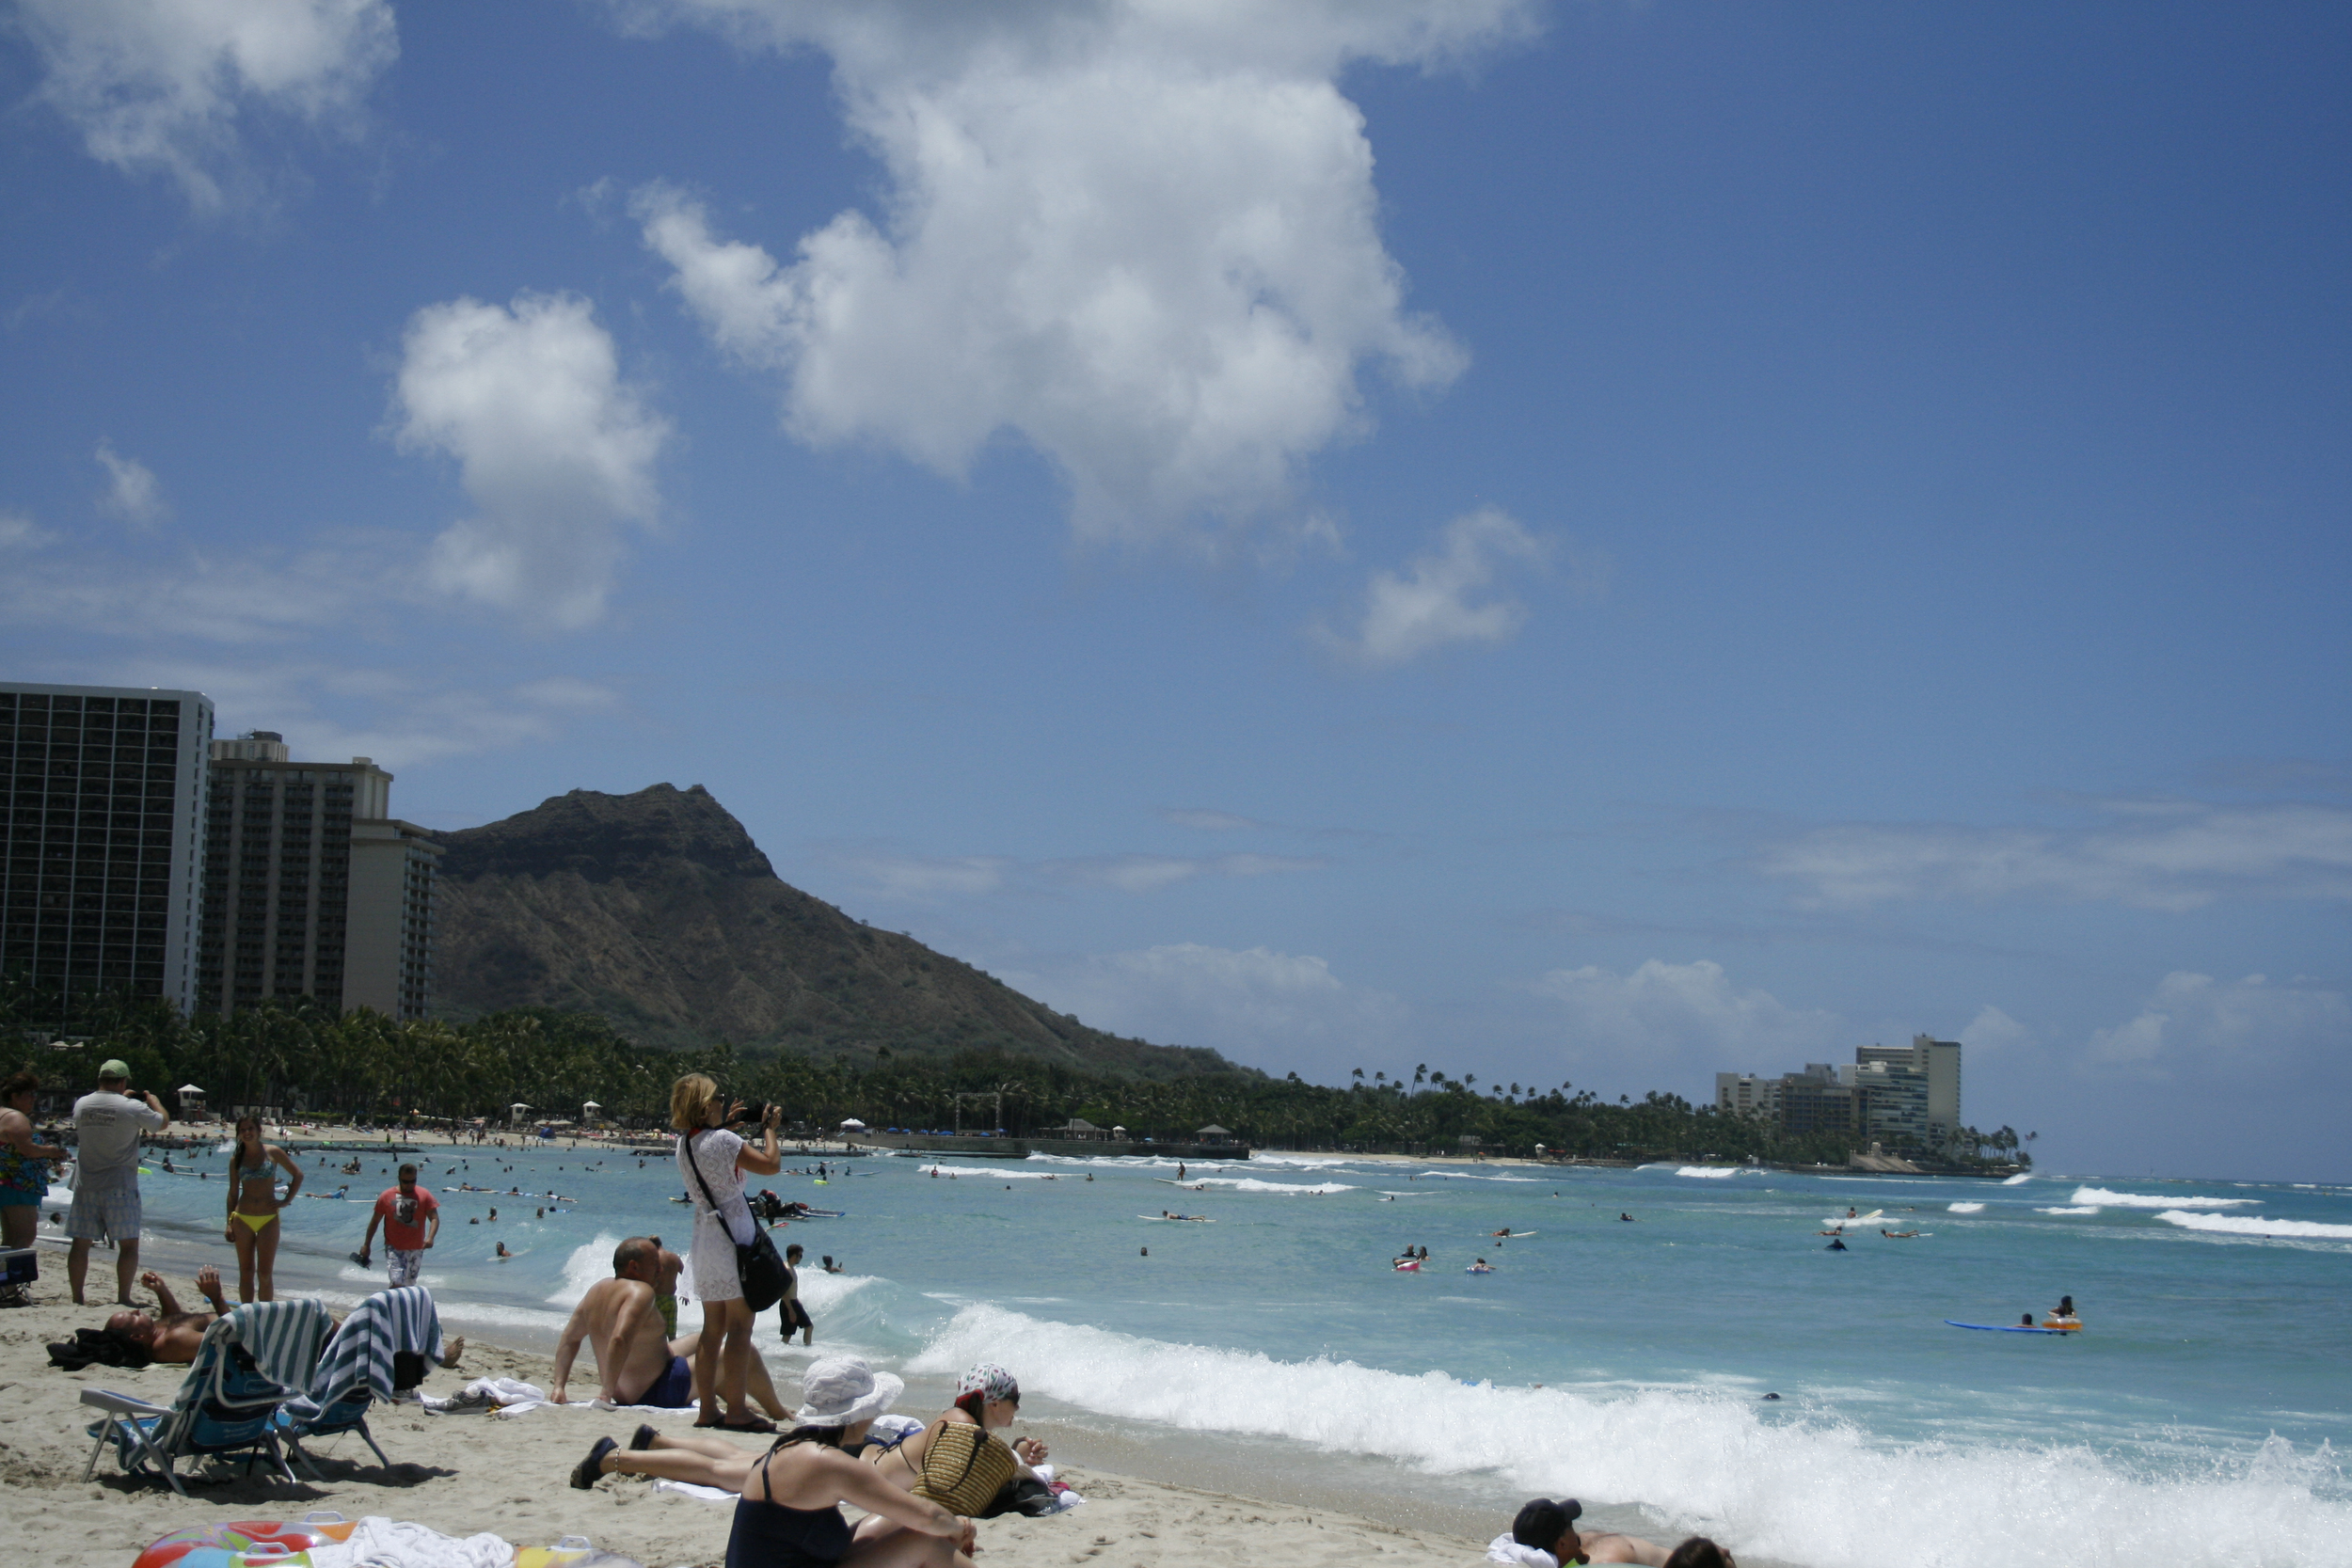 The view of Diamond Head from the beach.